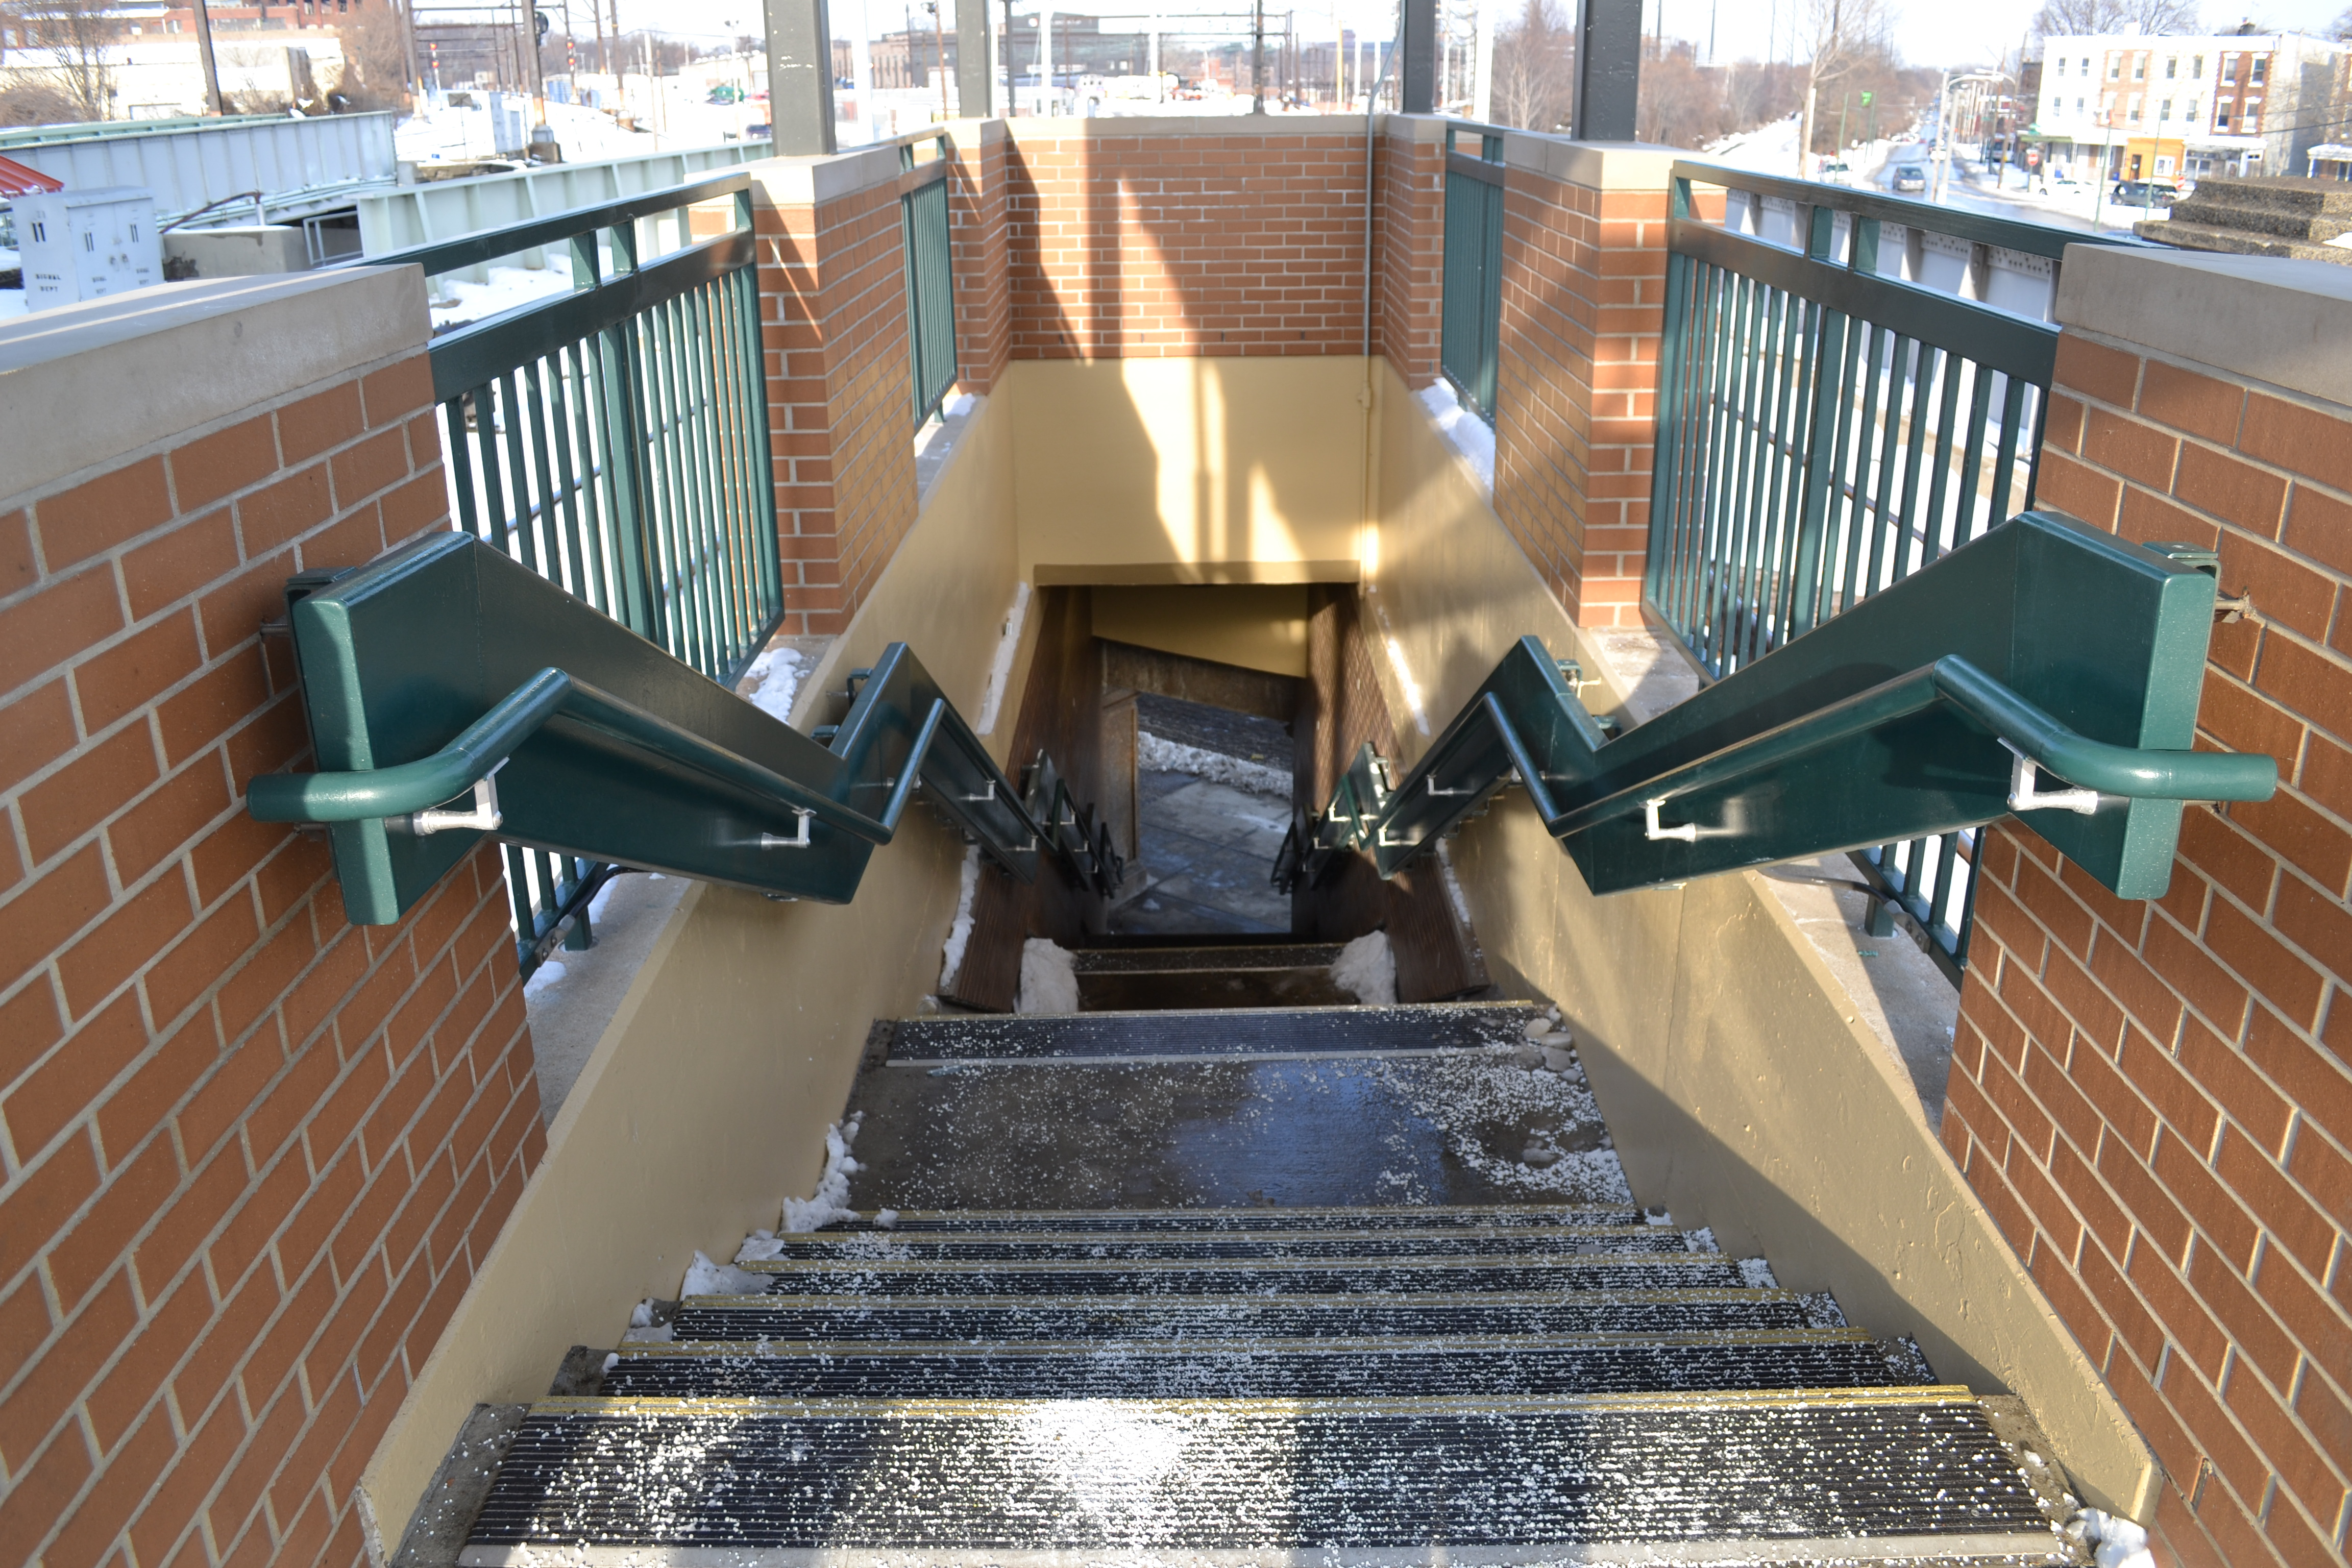 The stairs to the outbound platform have been revamped